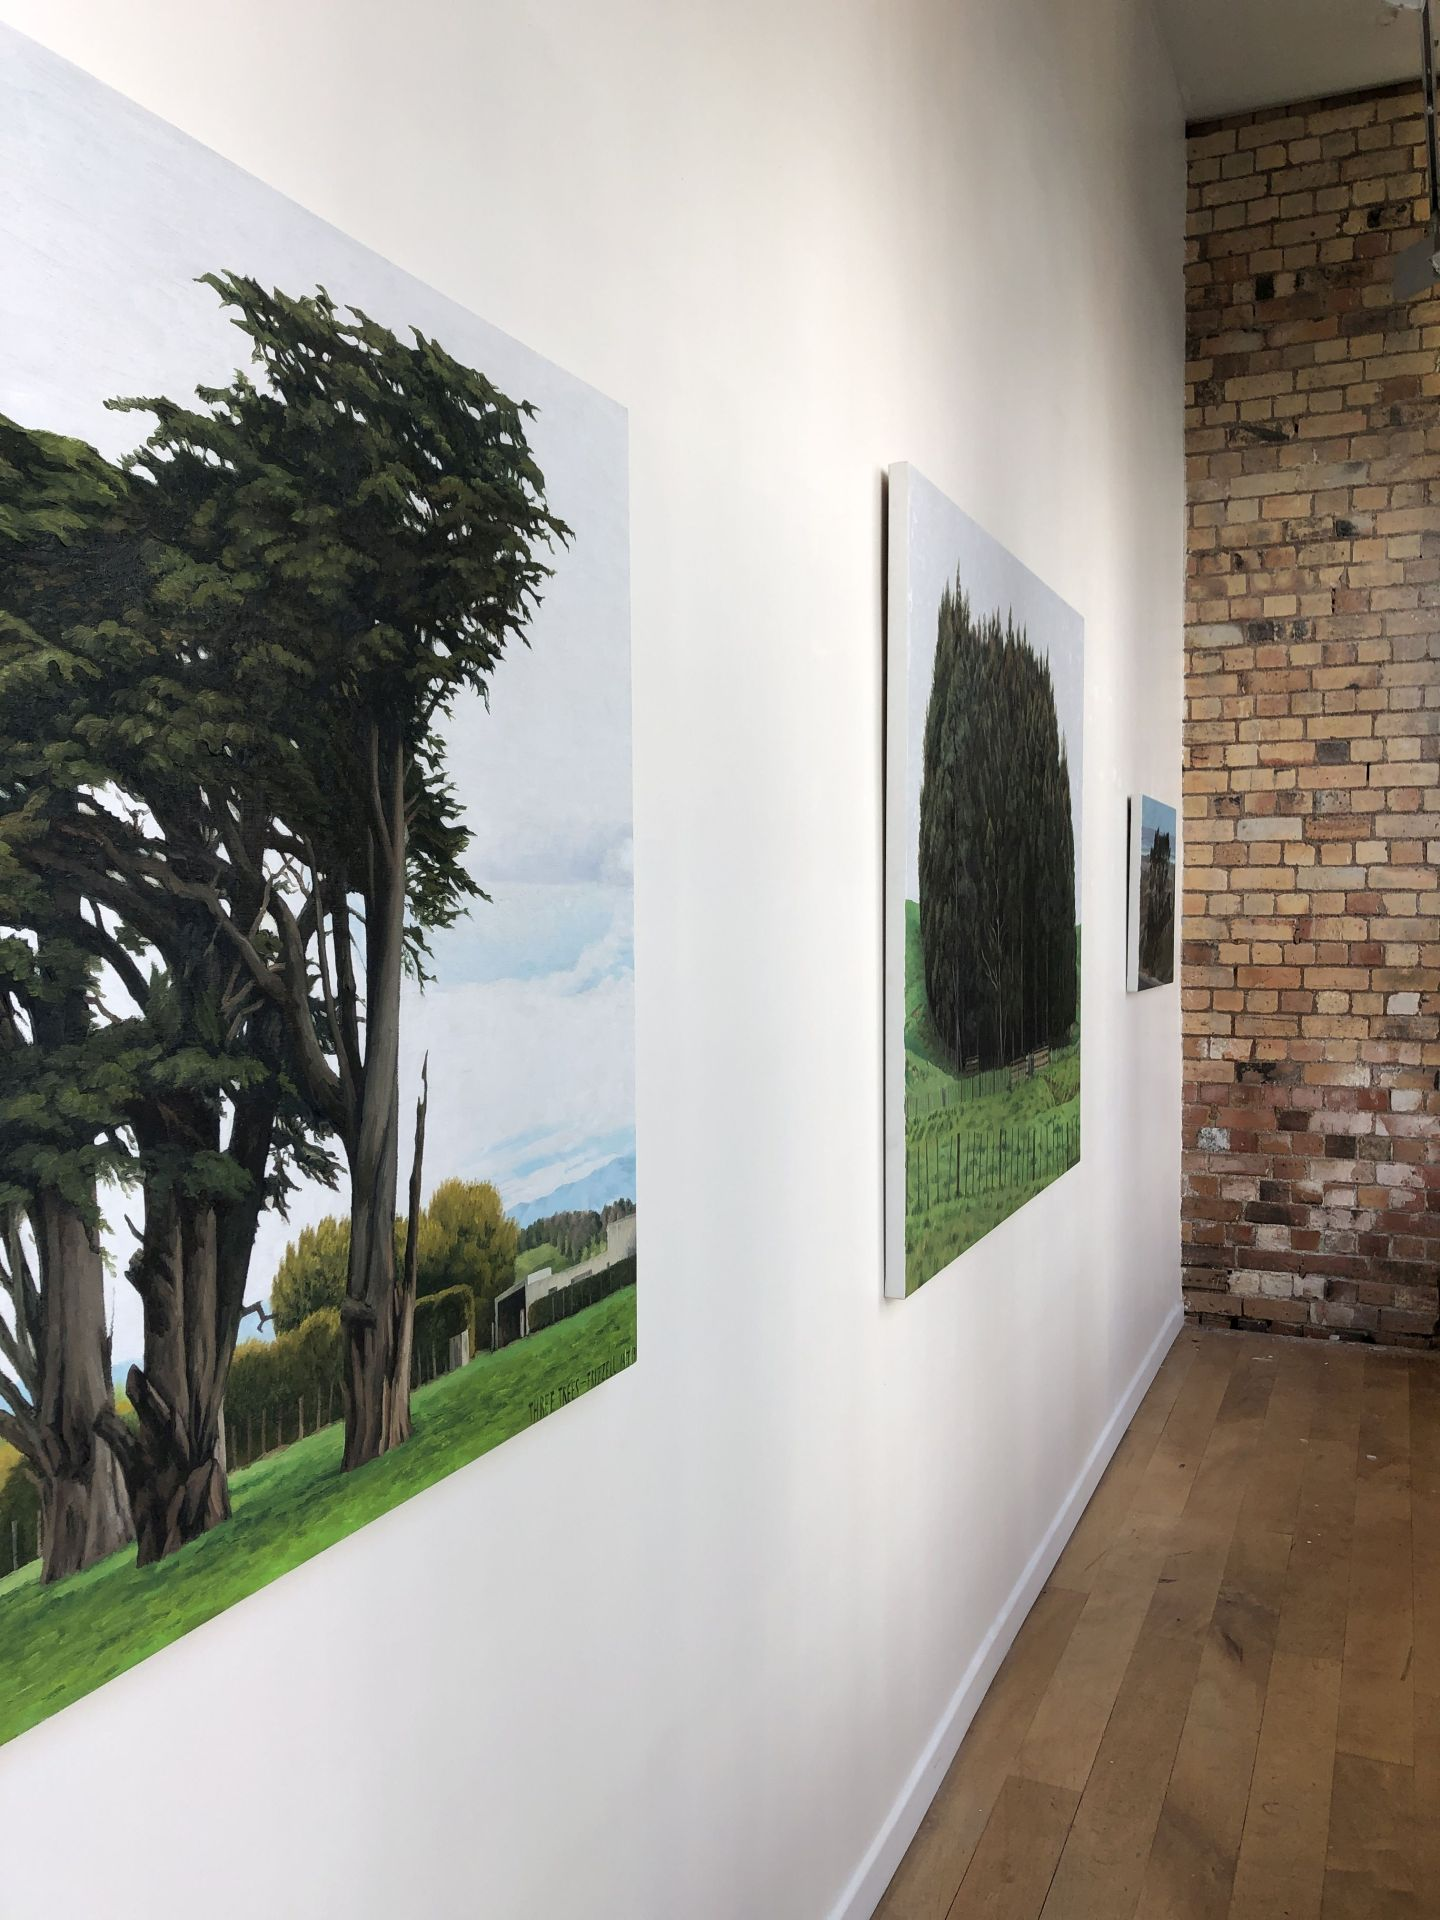 Dick Frizzell Landscapes at Britomart Project Space